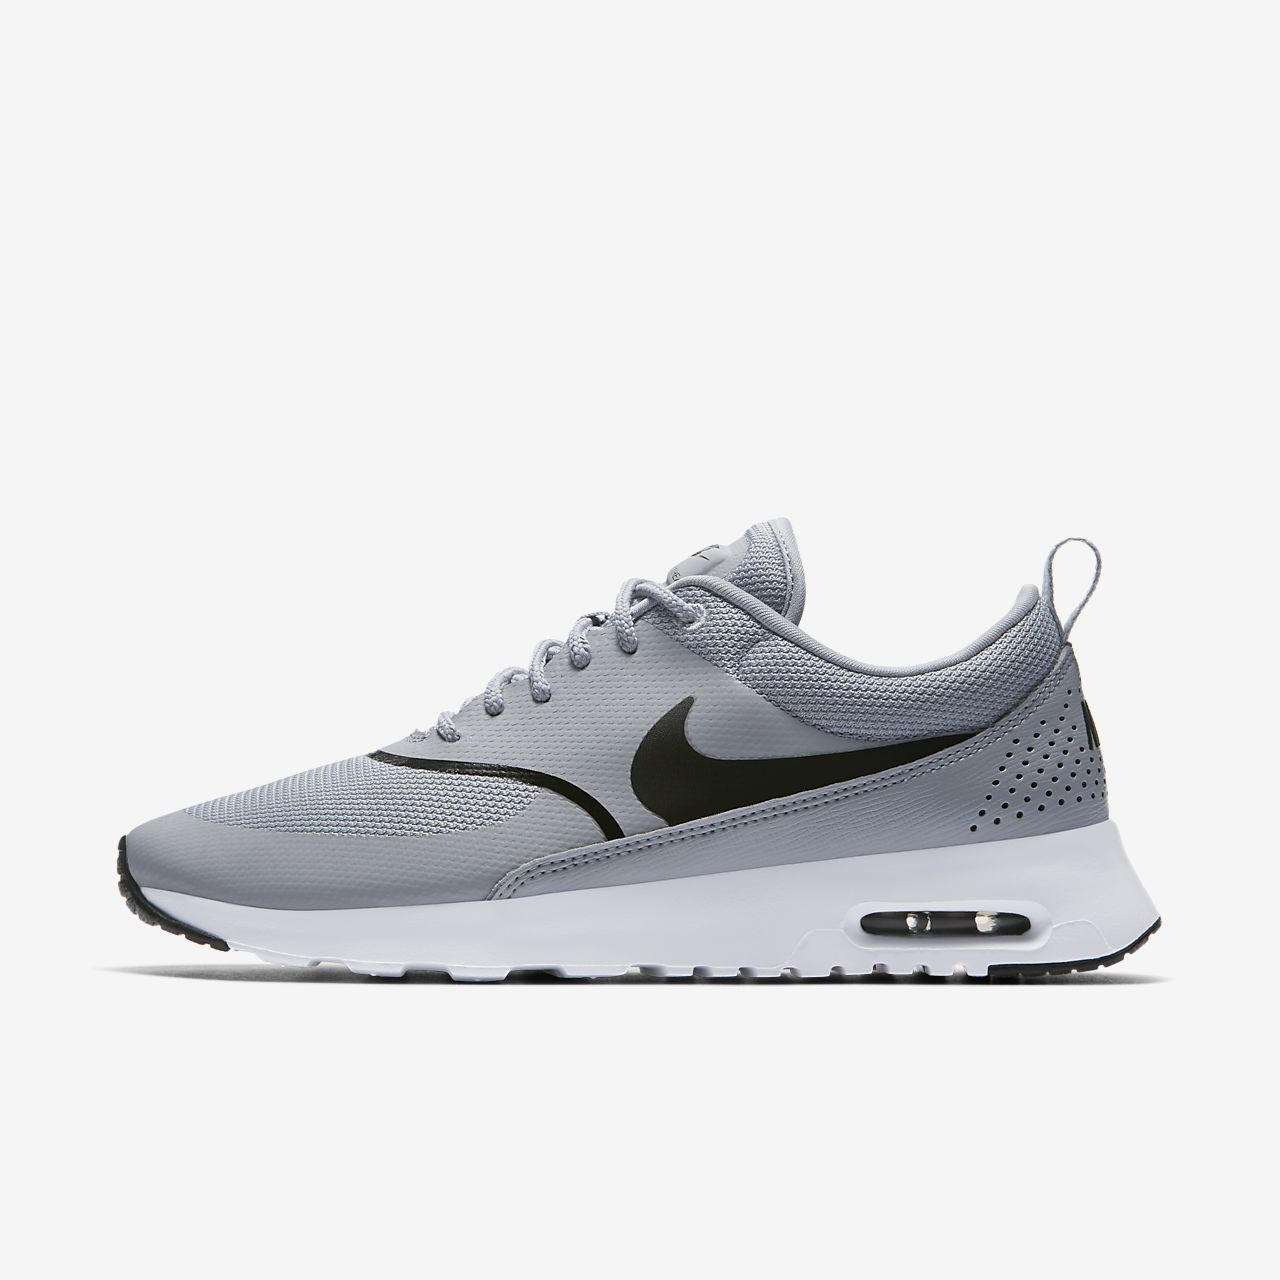 reputable site 58c54 70241 ... Nike Air Max Thea Women s Shoe